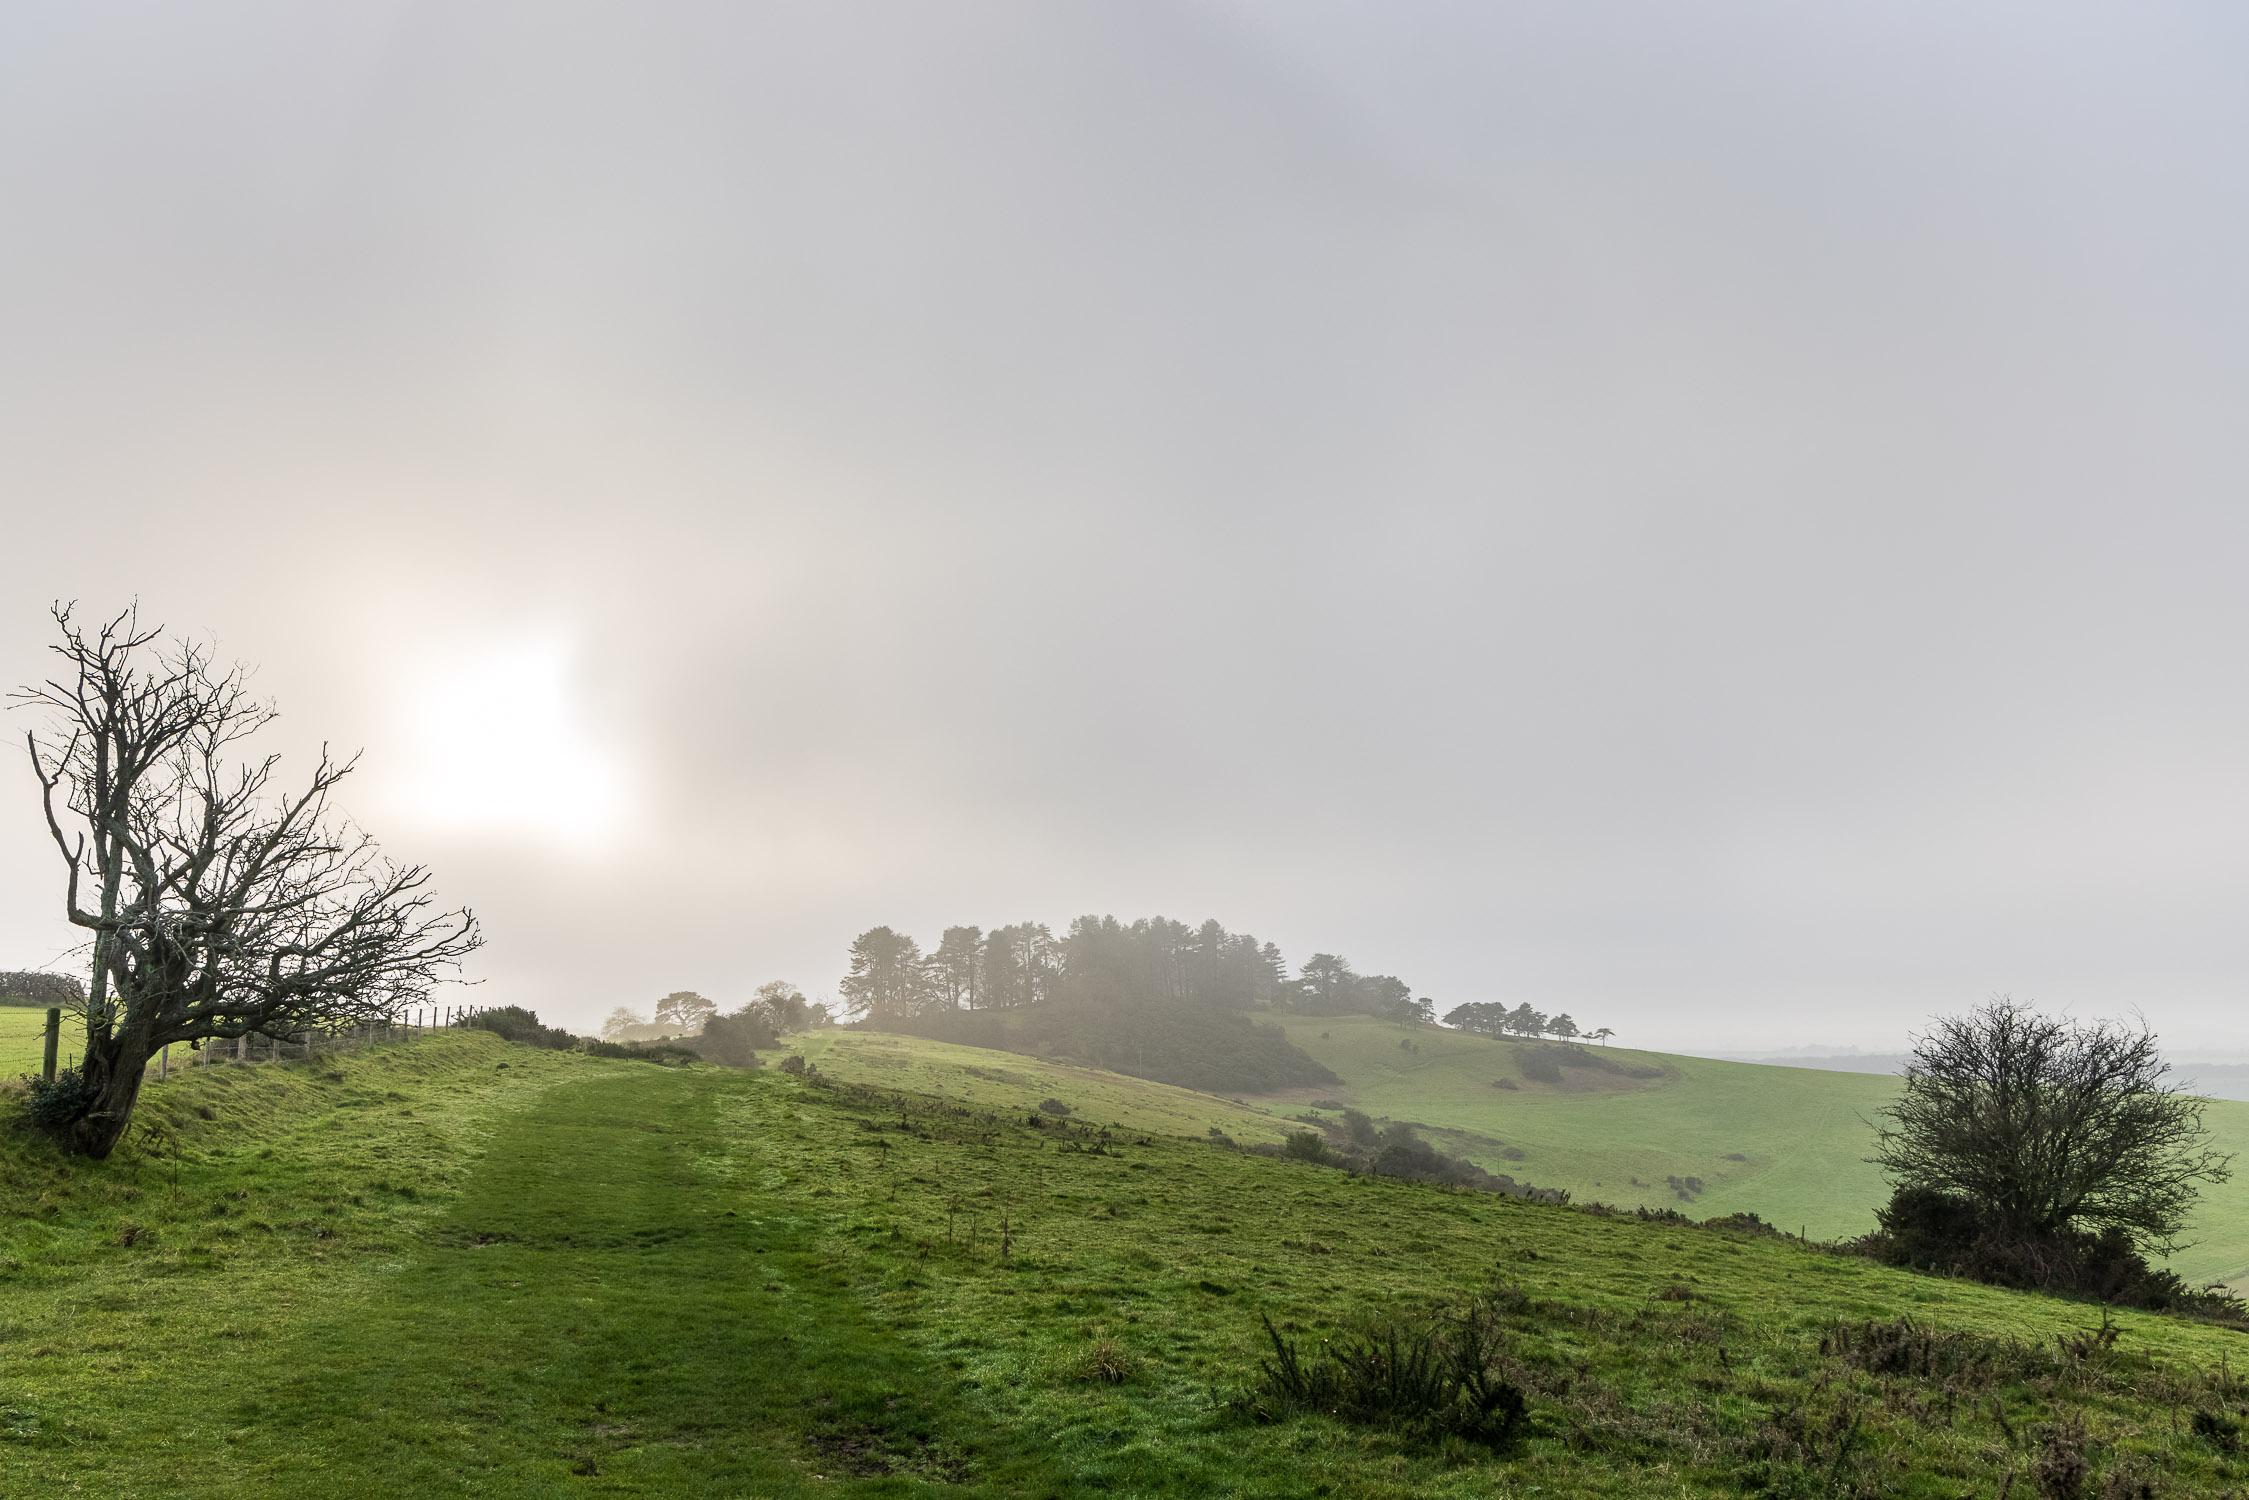 Sunlight in the fog, Penbury Knoll